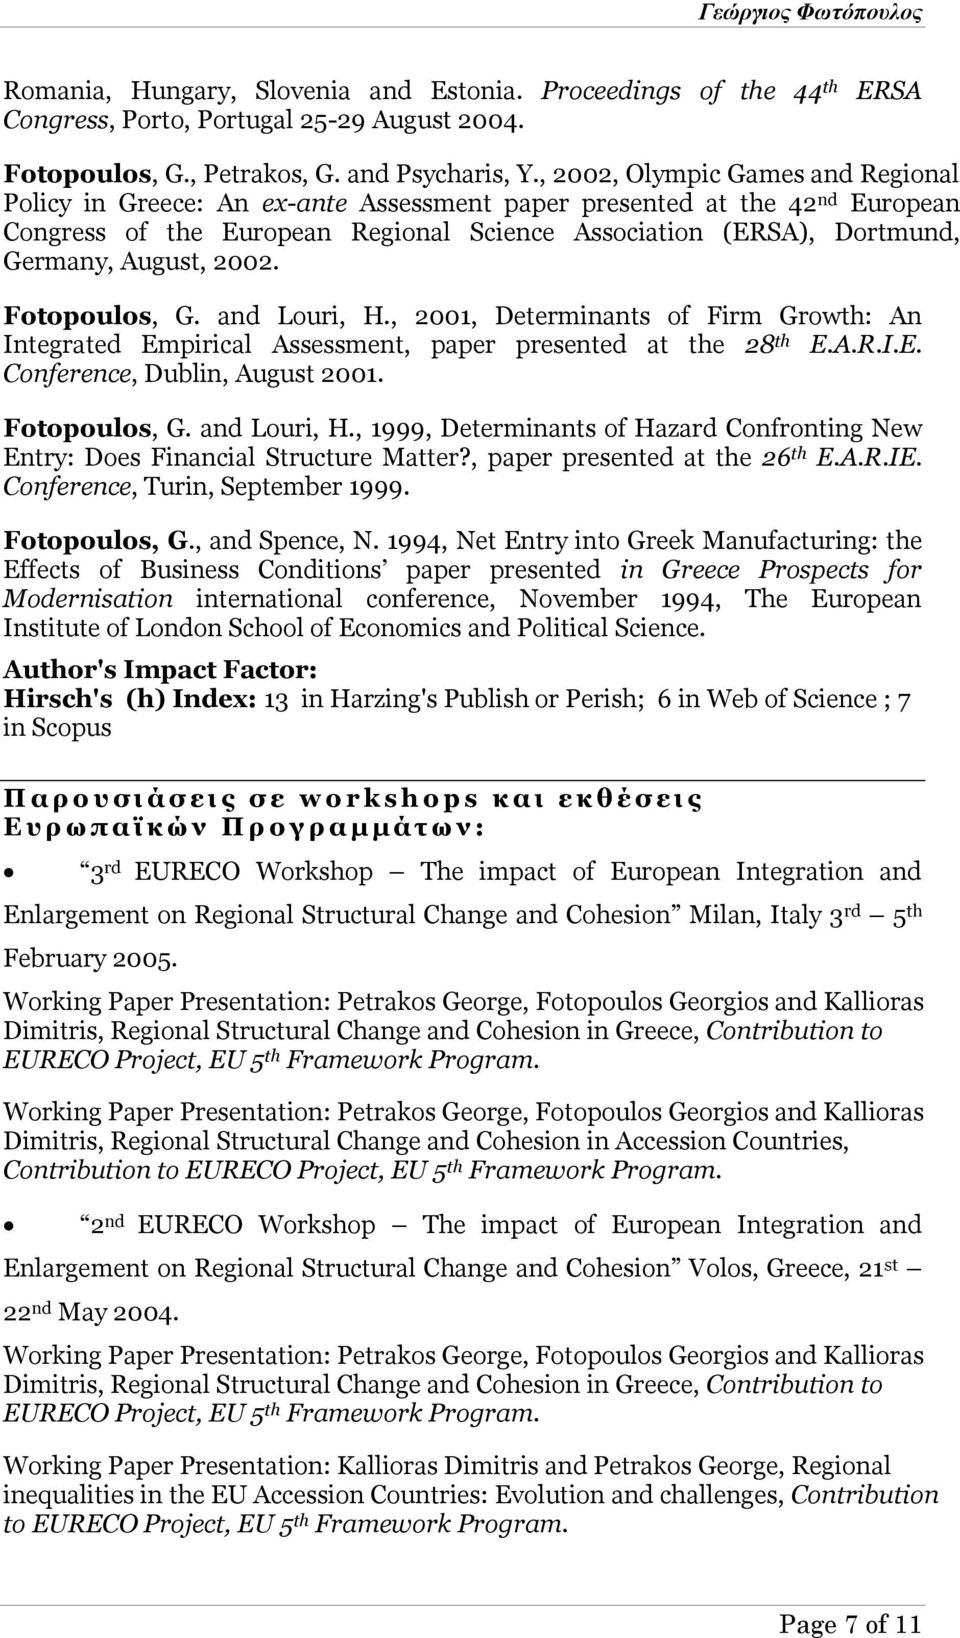 August, 2002. Fotopoulos, G. and Louri, H., 2001, Determinants of Firm Growth: An Integrated Empirical Assessment, paper presented at the 28 th E.A.R.I.E. Conference, Dublin, August 2001.